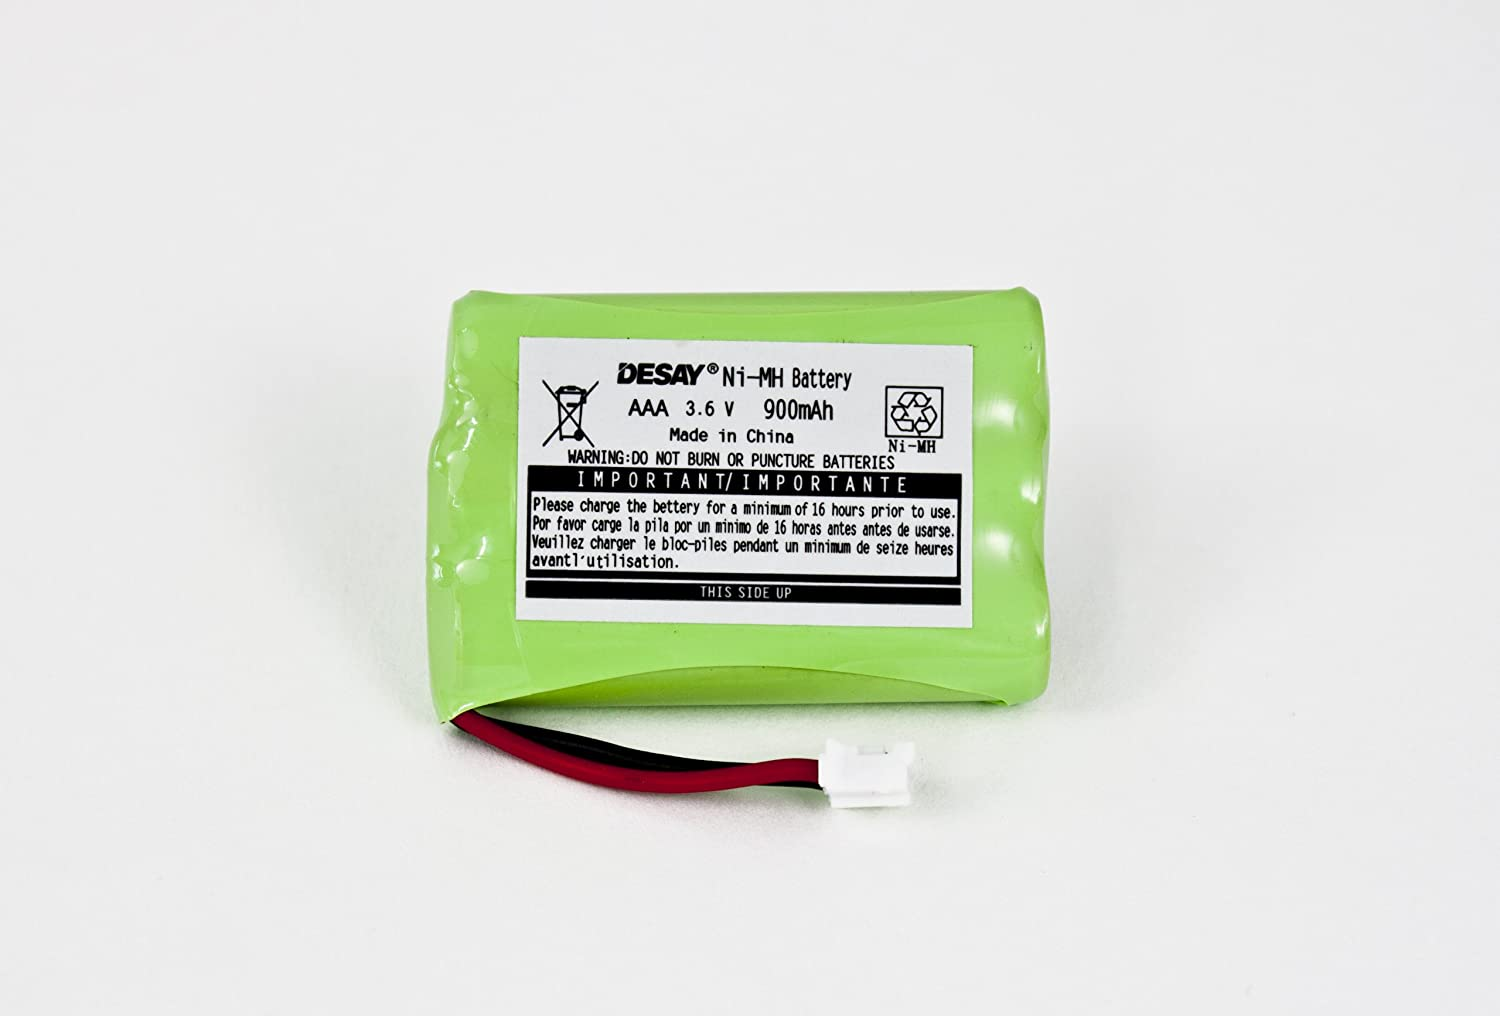 User Replaceable, Rechargeable Battery Pack for Motorola MBP33 and MBP36 Baby Monitors Motorola Baby BATT36